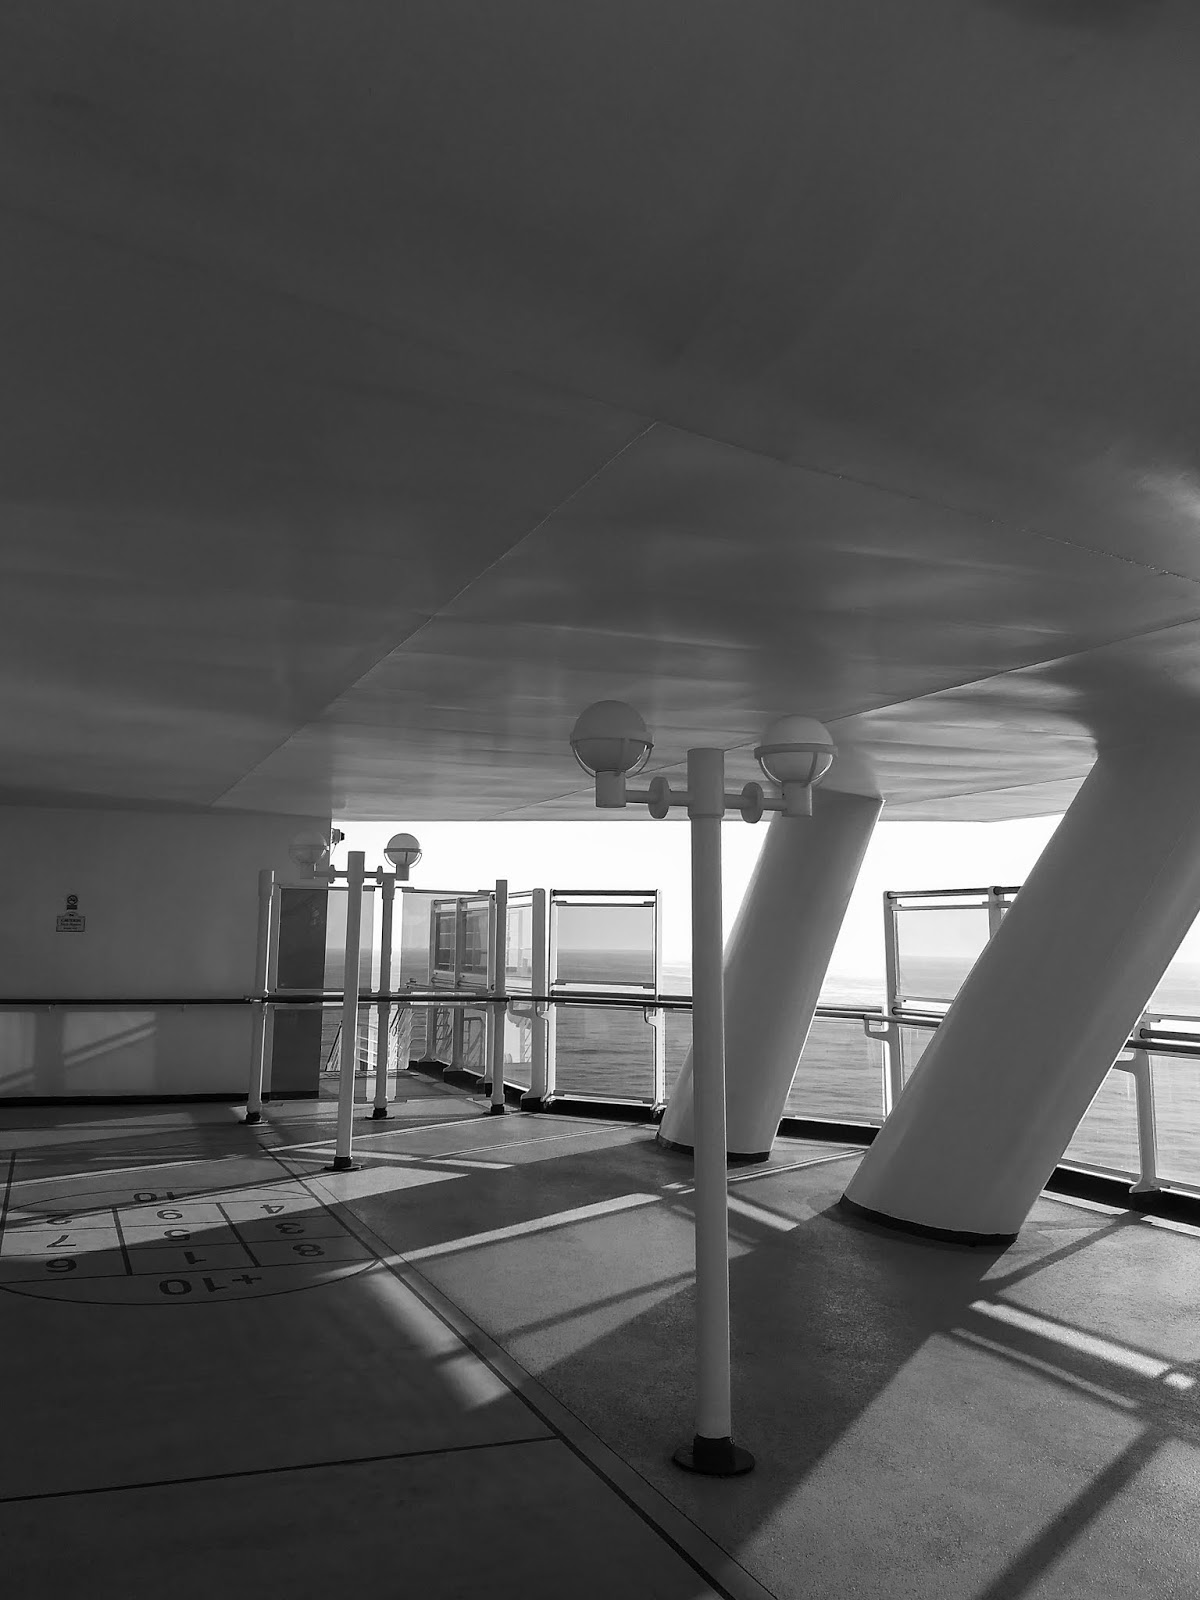 A black and white capture from under the Captain's Bridge on the Sapphire Princess.